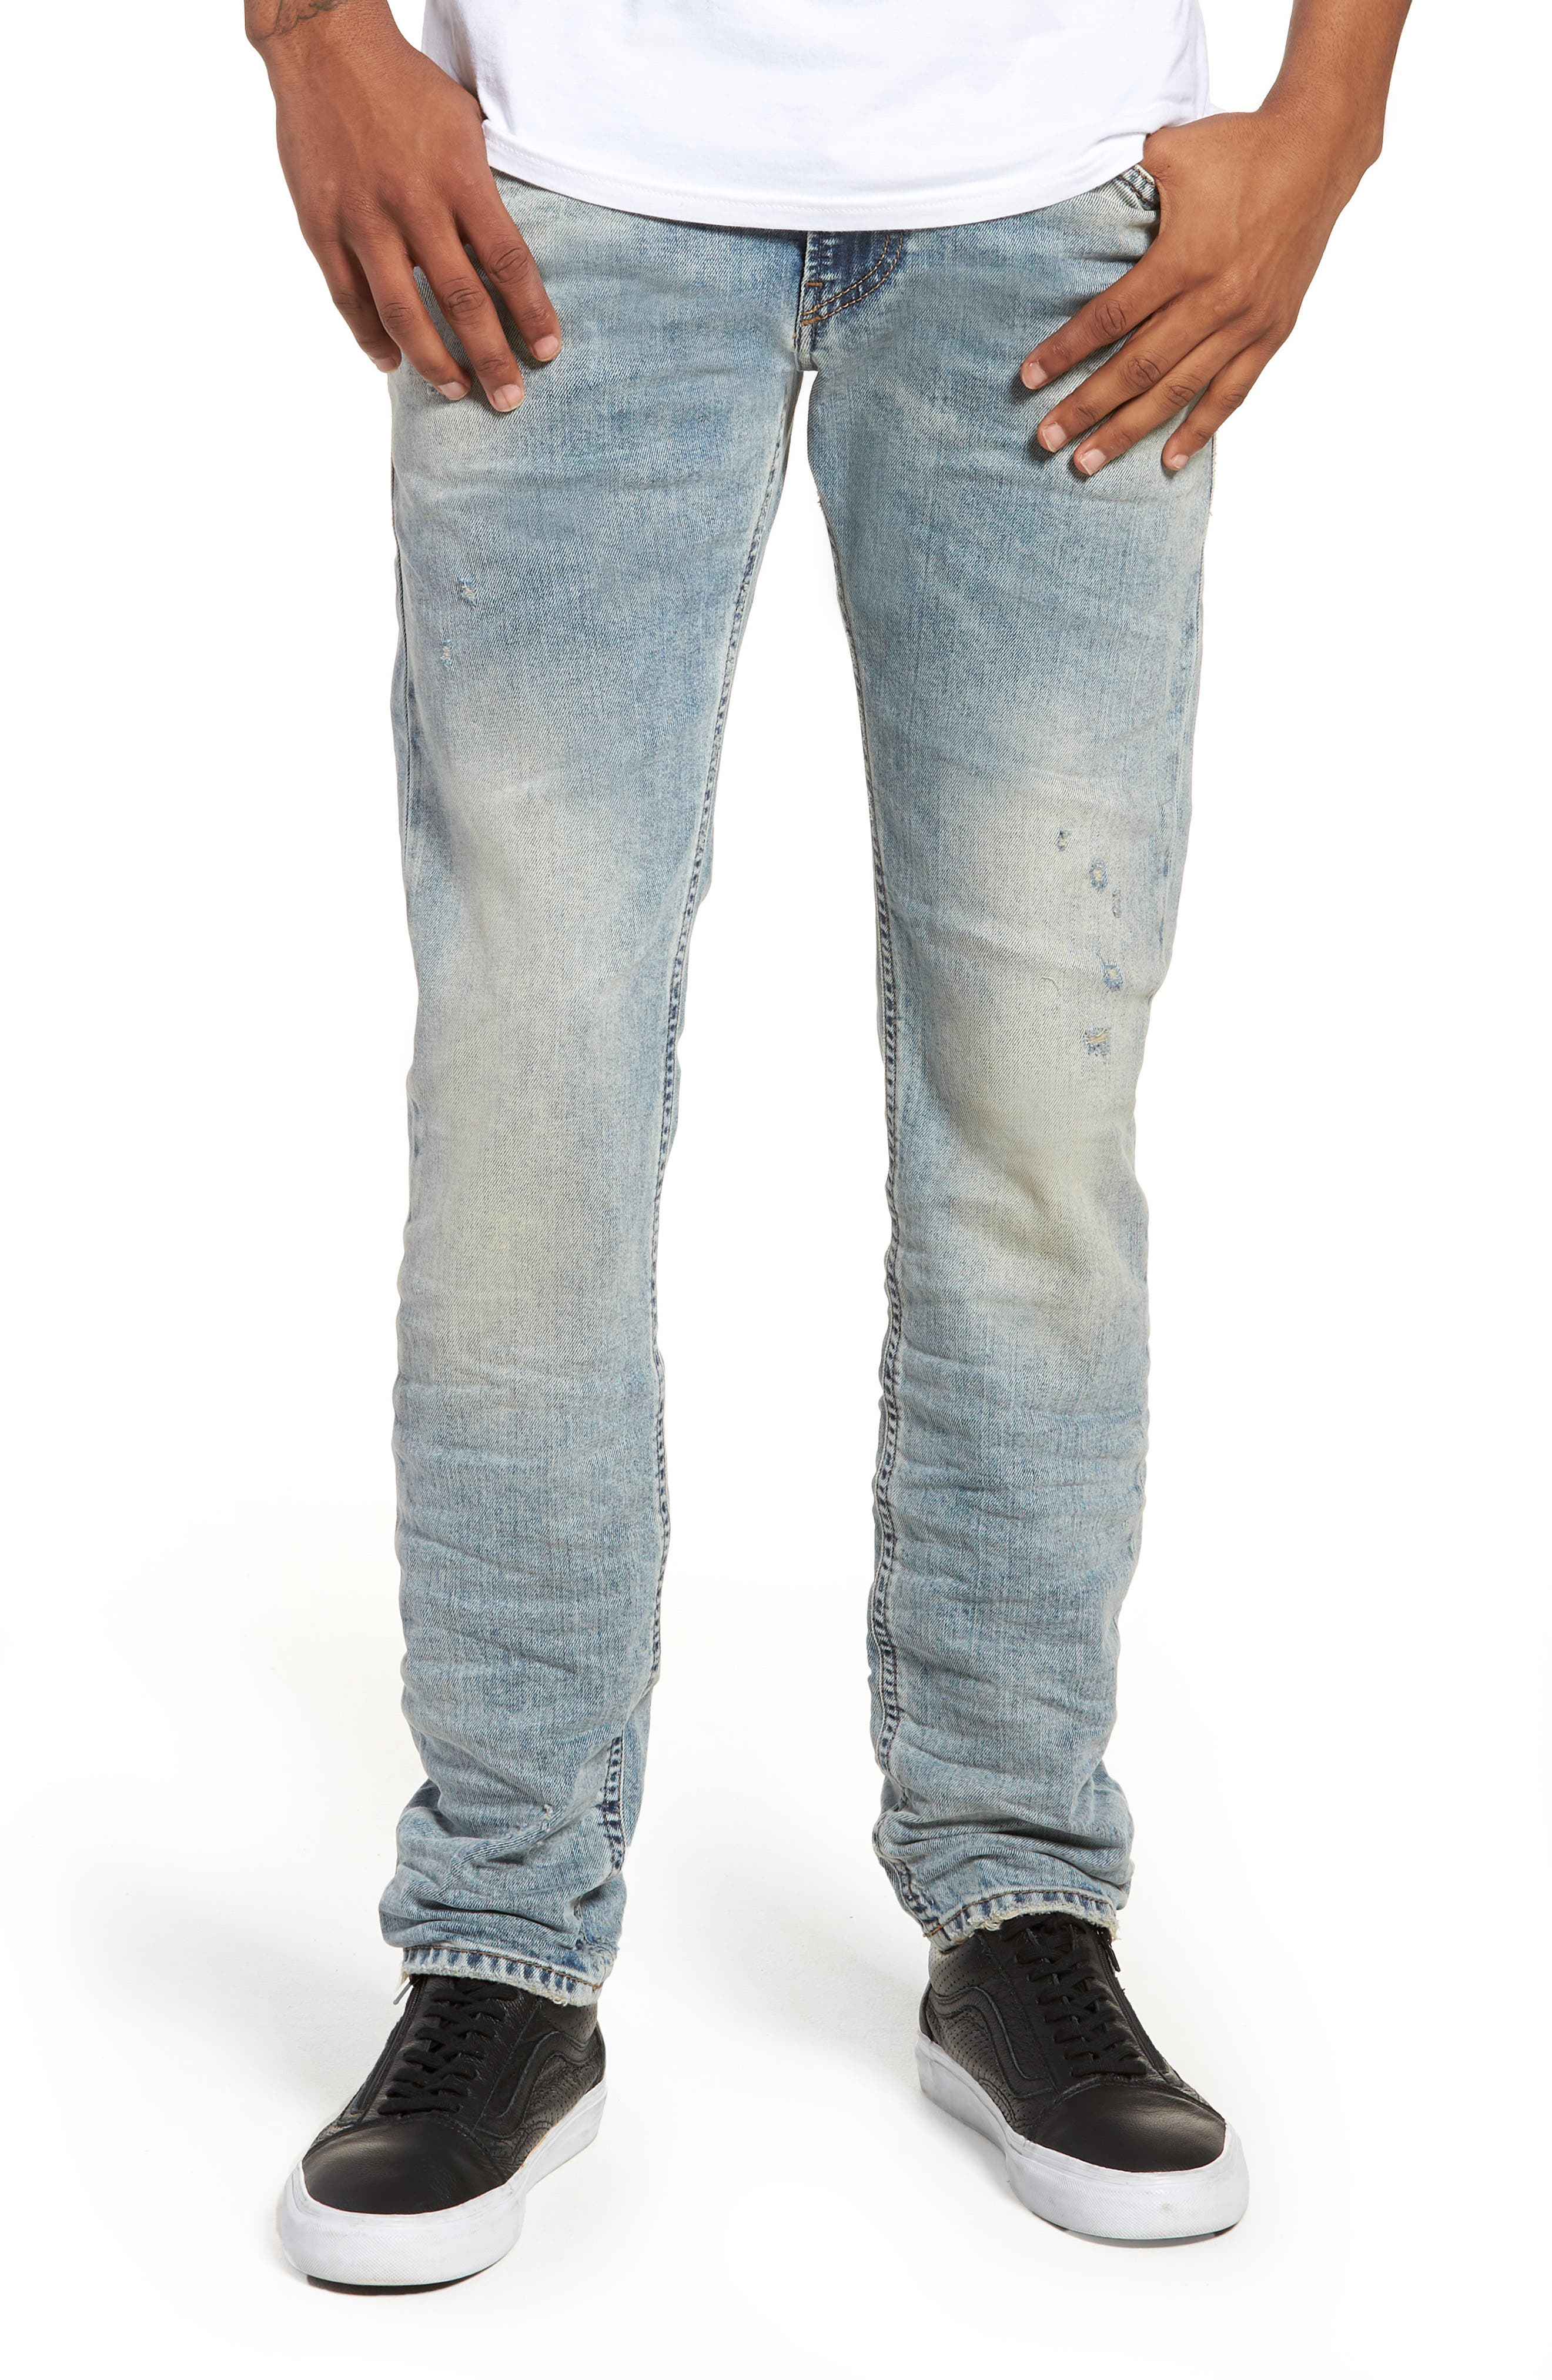 Thommer Skinny Fit Jeans,                             Main thumbnail 1, color,                             084Rf